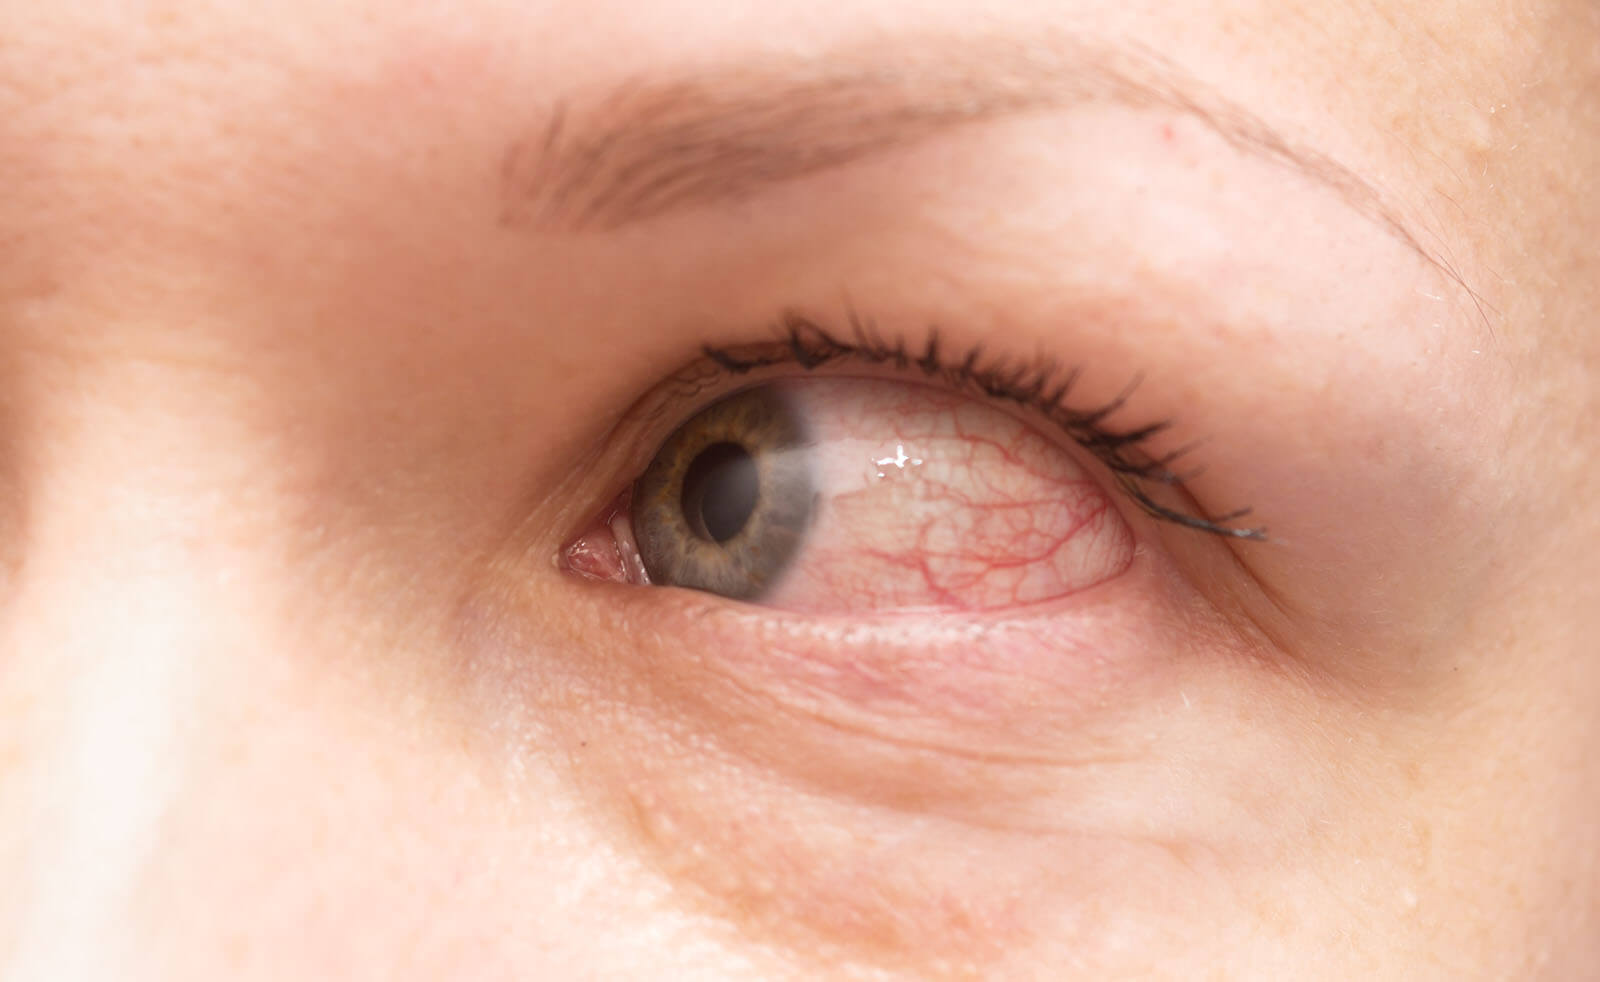 Itchy red eye, symptomatic of an eye allergy.